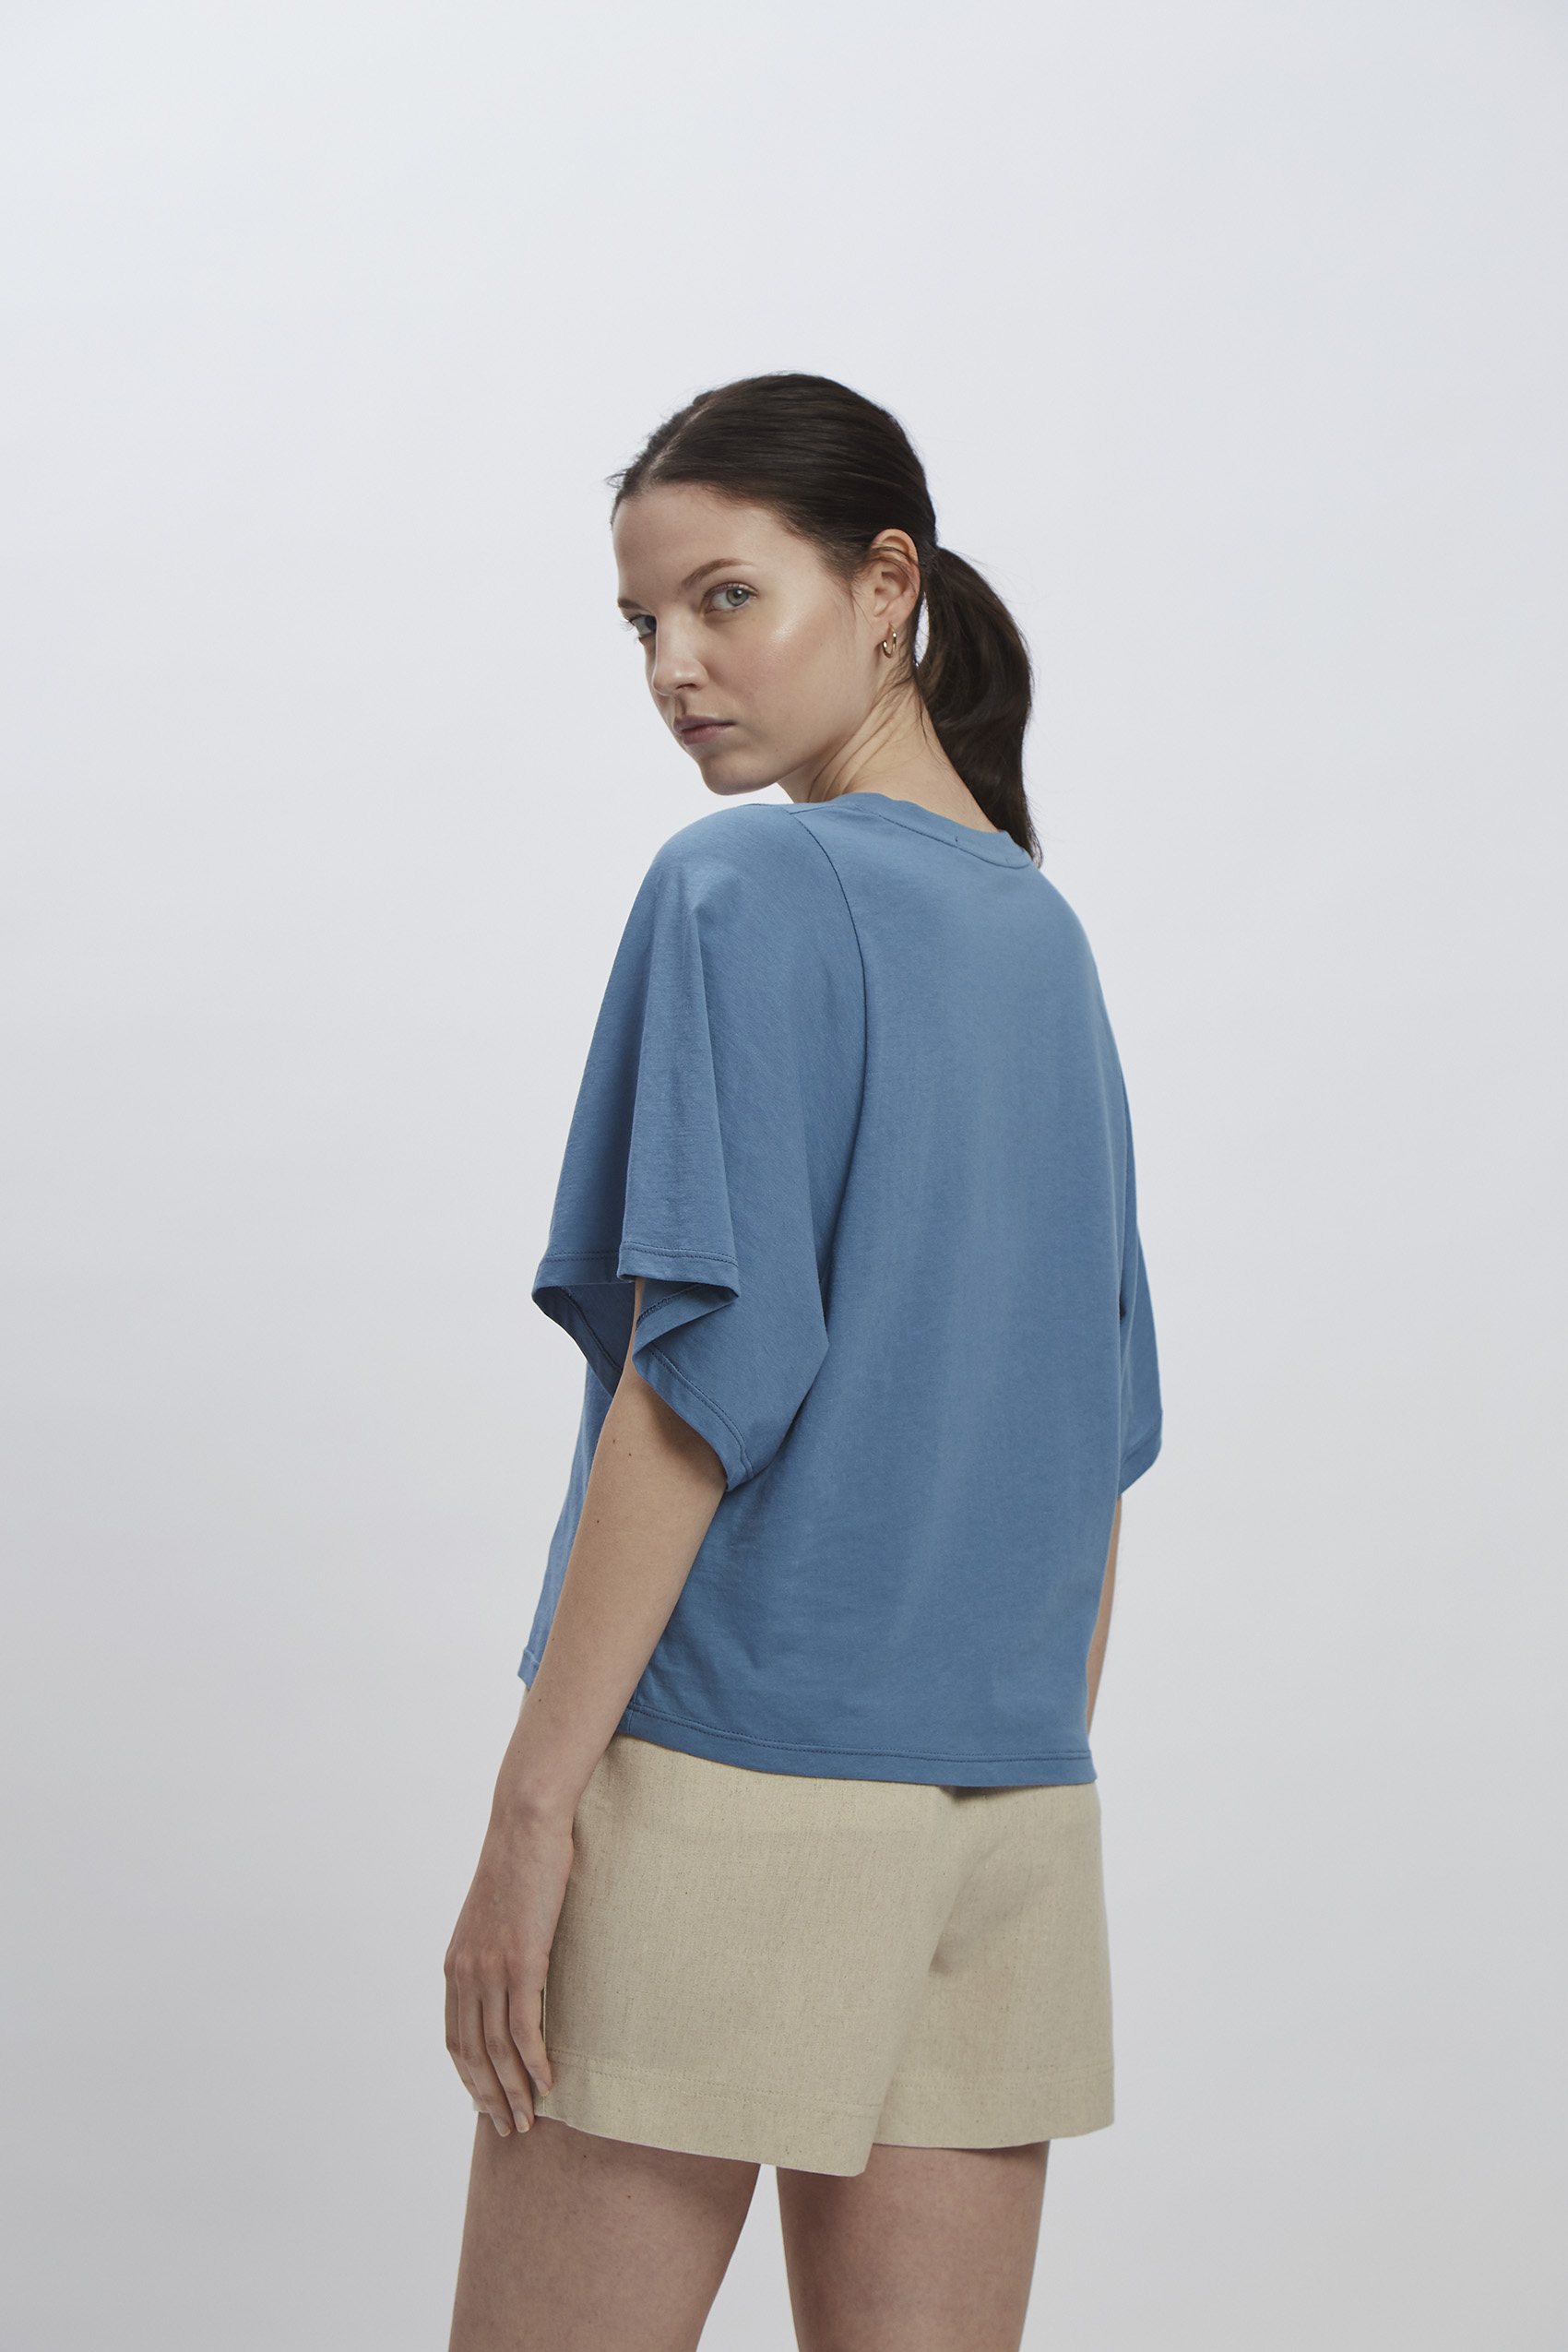 awada_remera-ginger_00-01-2020__picture-15754